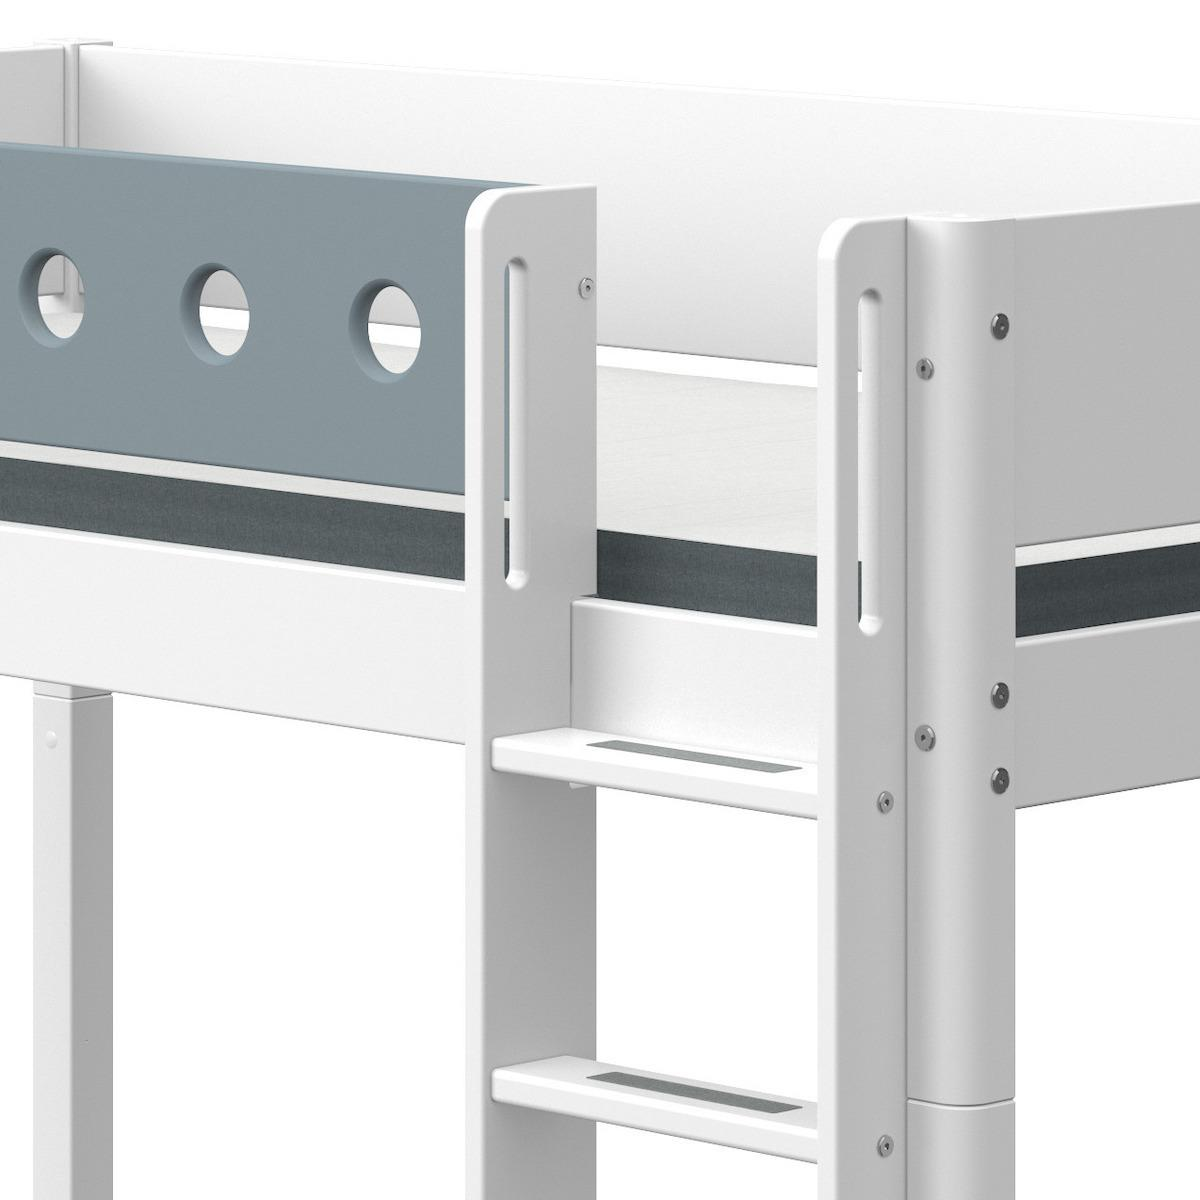 Cama media alta 90x190cm escalera recta WHITE Flexa blanco-azul claro